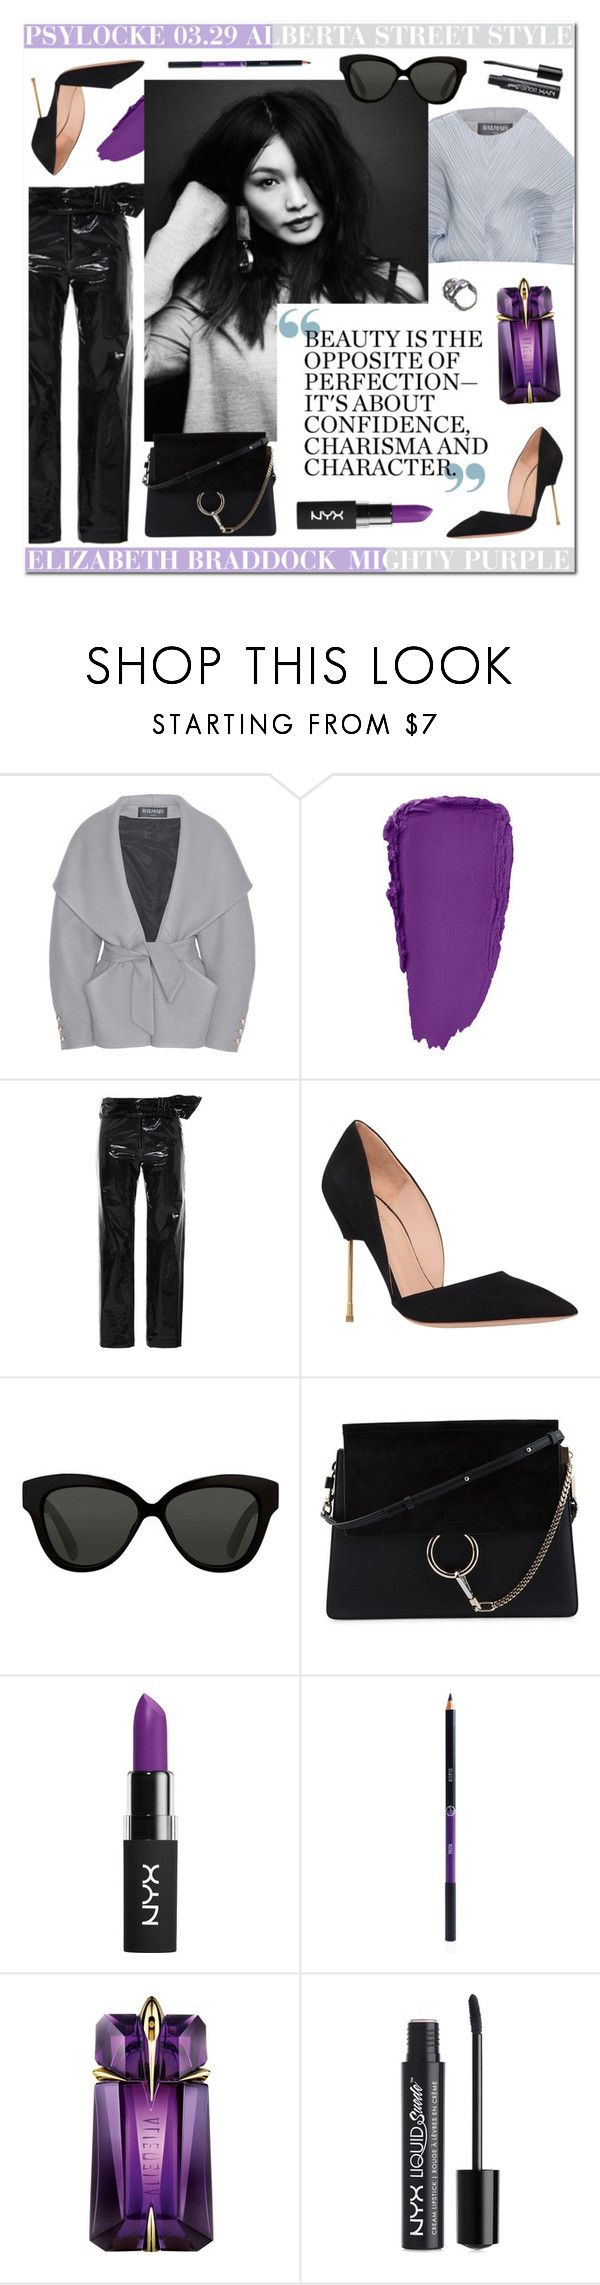 """ALBERTA STREET STYLE // PSYLOCKE"" by carla-turner-bastet ❤ liked on Polyvore featuring Balmain, Isabel Marant, Kurt Geiger, Linda Farrow, Chloé, NYX, Sigma, Thierry Mugler, Eilisain Jewelry and Psylocke"